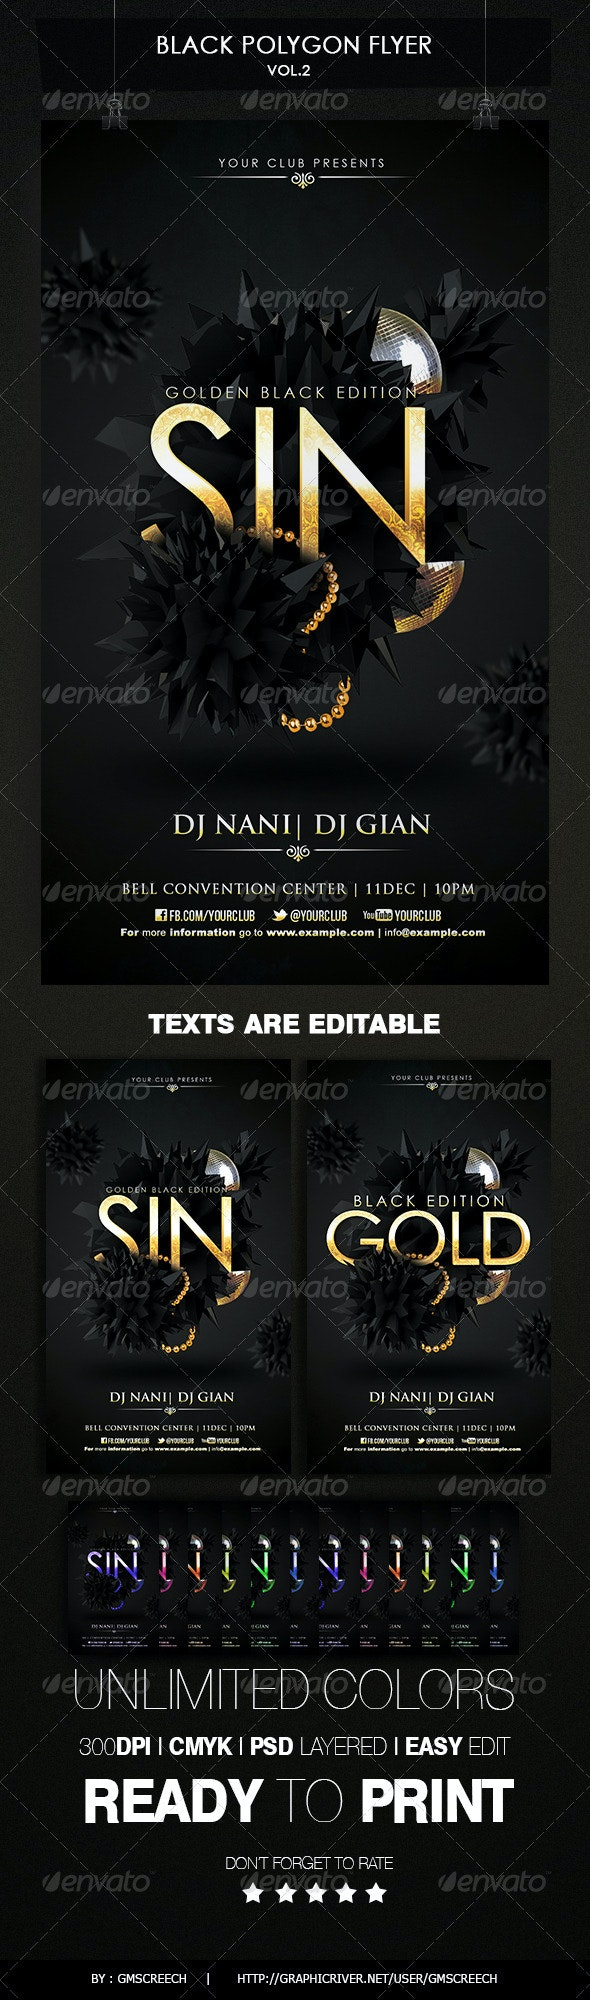 Black Polygon Flyer - Clubs & Parties Events